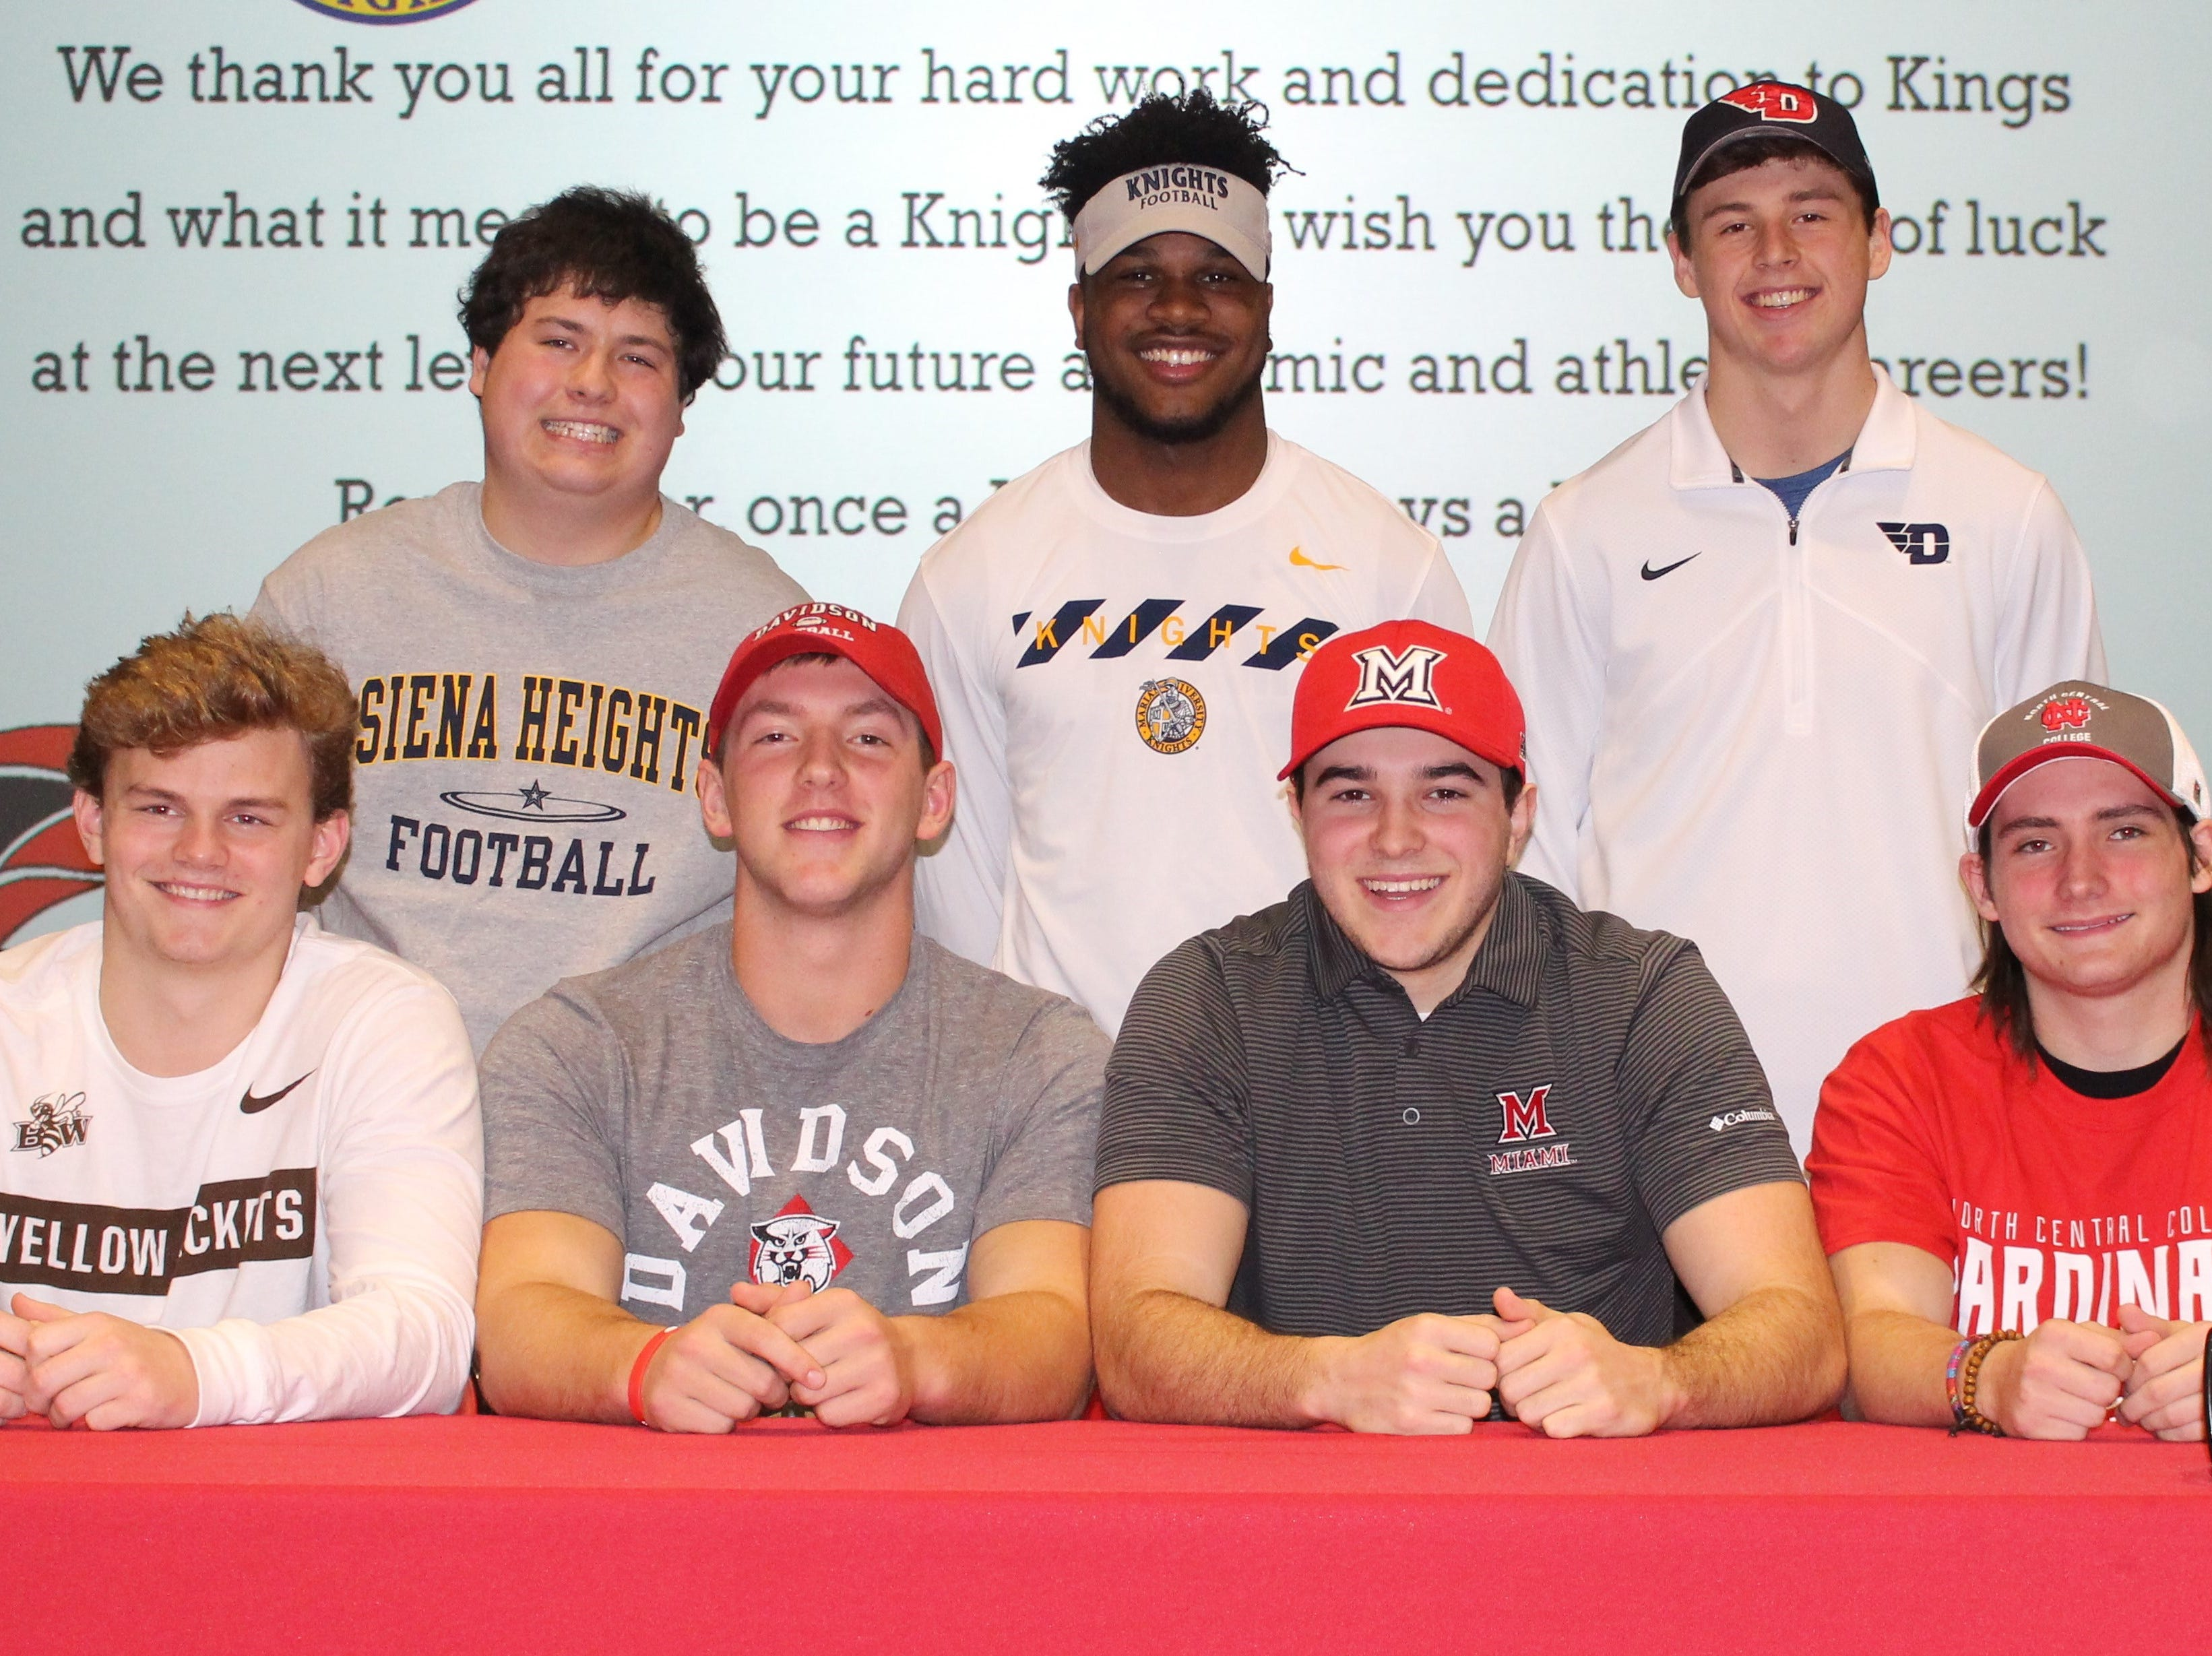 Kings High School had its Signing Day ceremony Feb. 6 for athletes committing to play sports in college. They are, from left: front,  Jacob Elam, football, Baldwin Wallace University; Jake Stylski, football, Davidson College; Brendan Beattie, football, Miami University-Oxford; Tommy Mitchell, football, North Central College; back, Logan Schmidt, football, Siena Heights University; Nak'emon Williams, football, Marian University; Ashton Koller, football, University of Dayton.